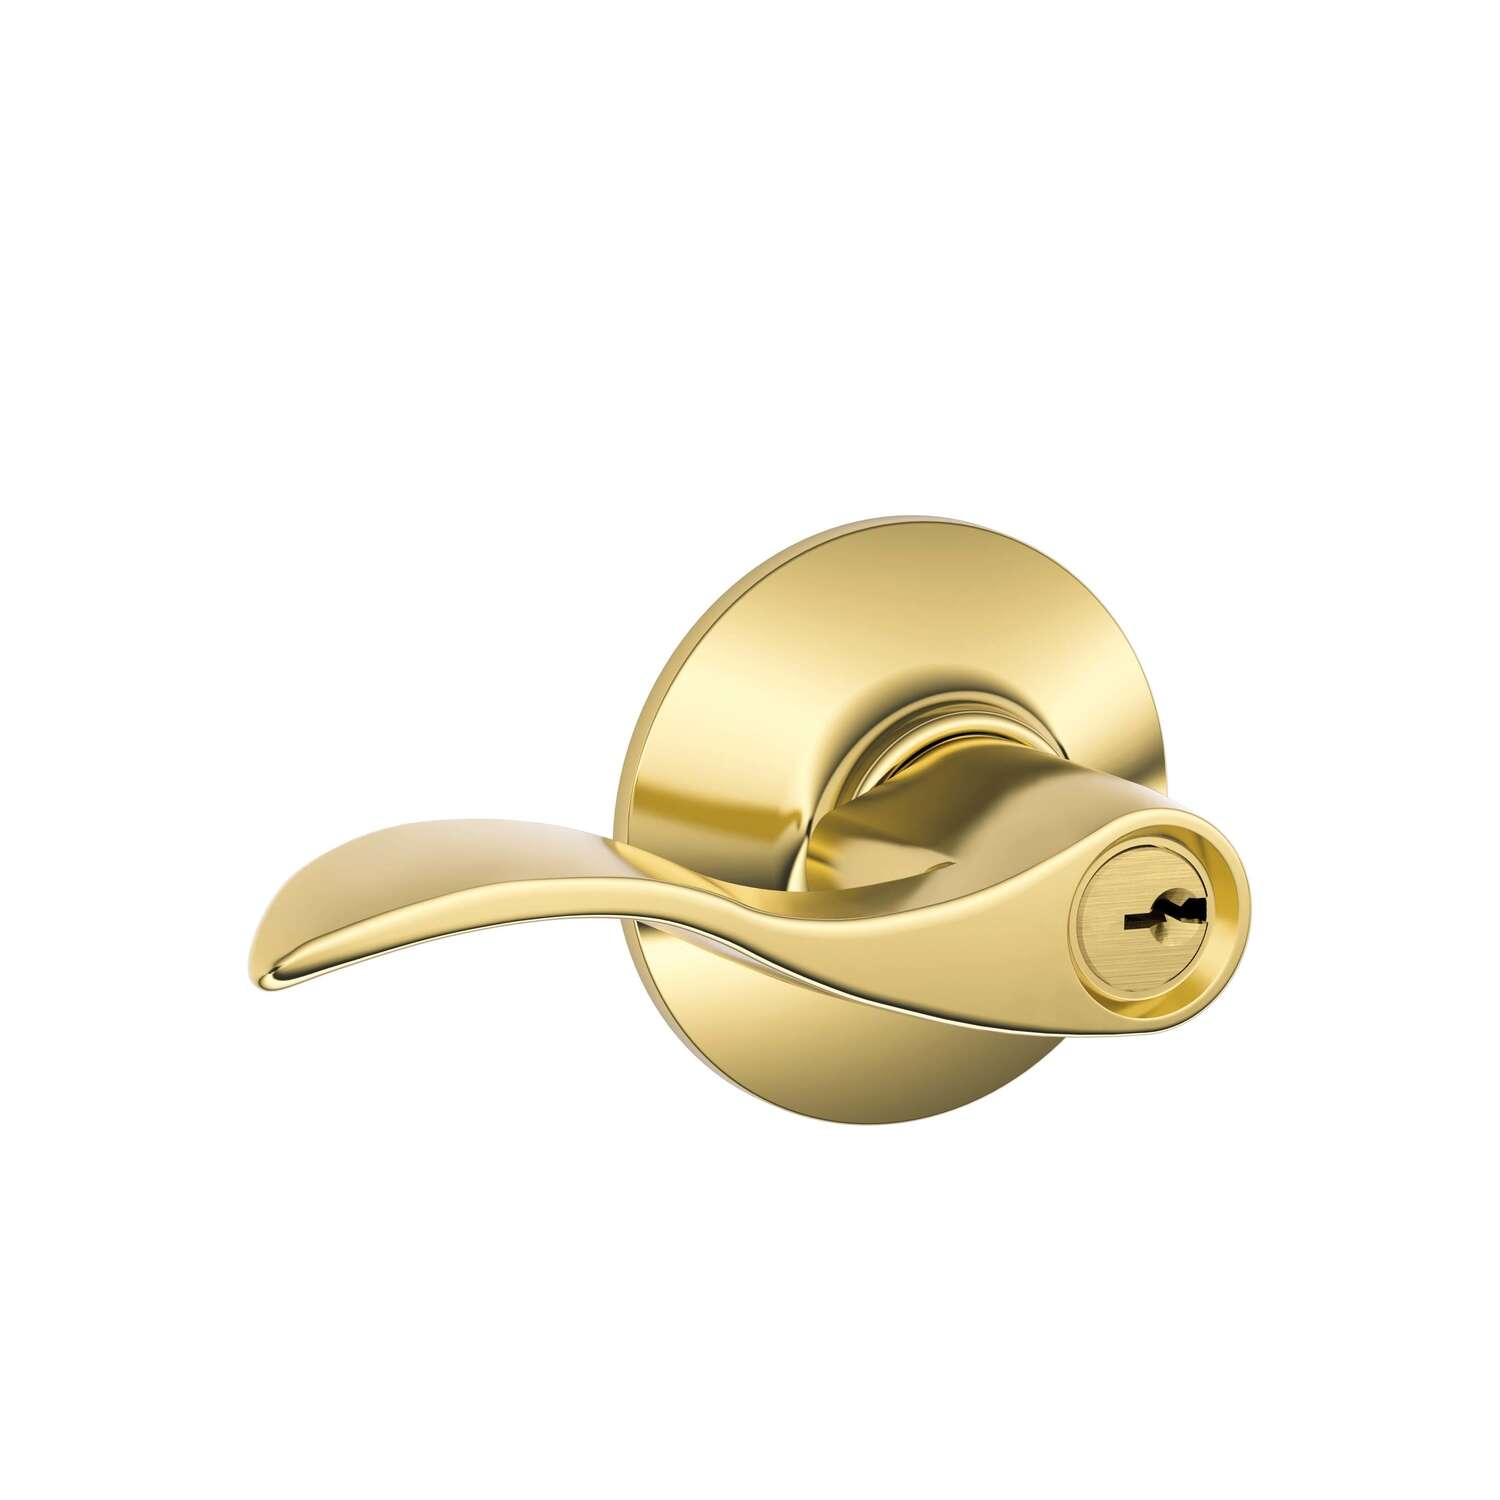 Schlage Accent Bright Brass Entry Lockset ANSI Grade 2 1-3/4 in.